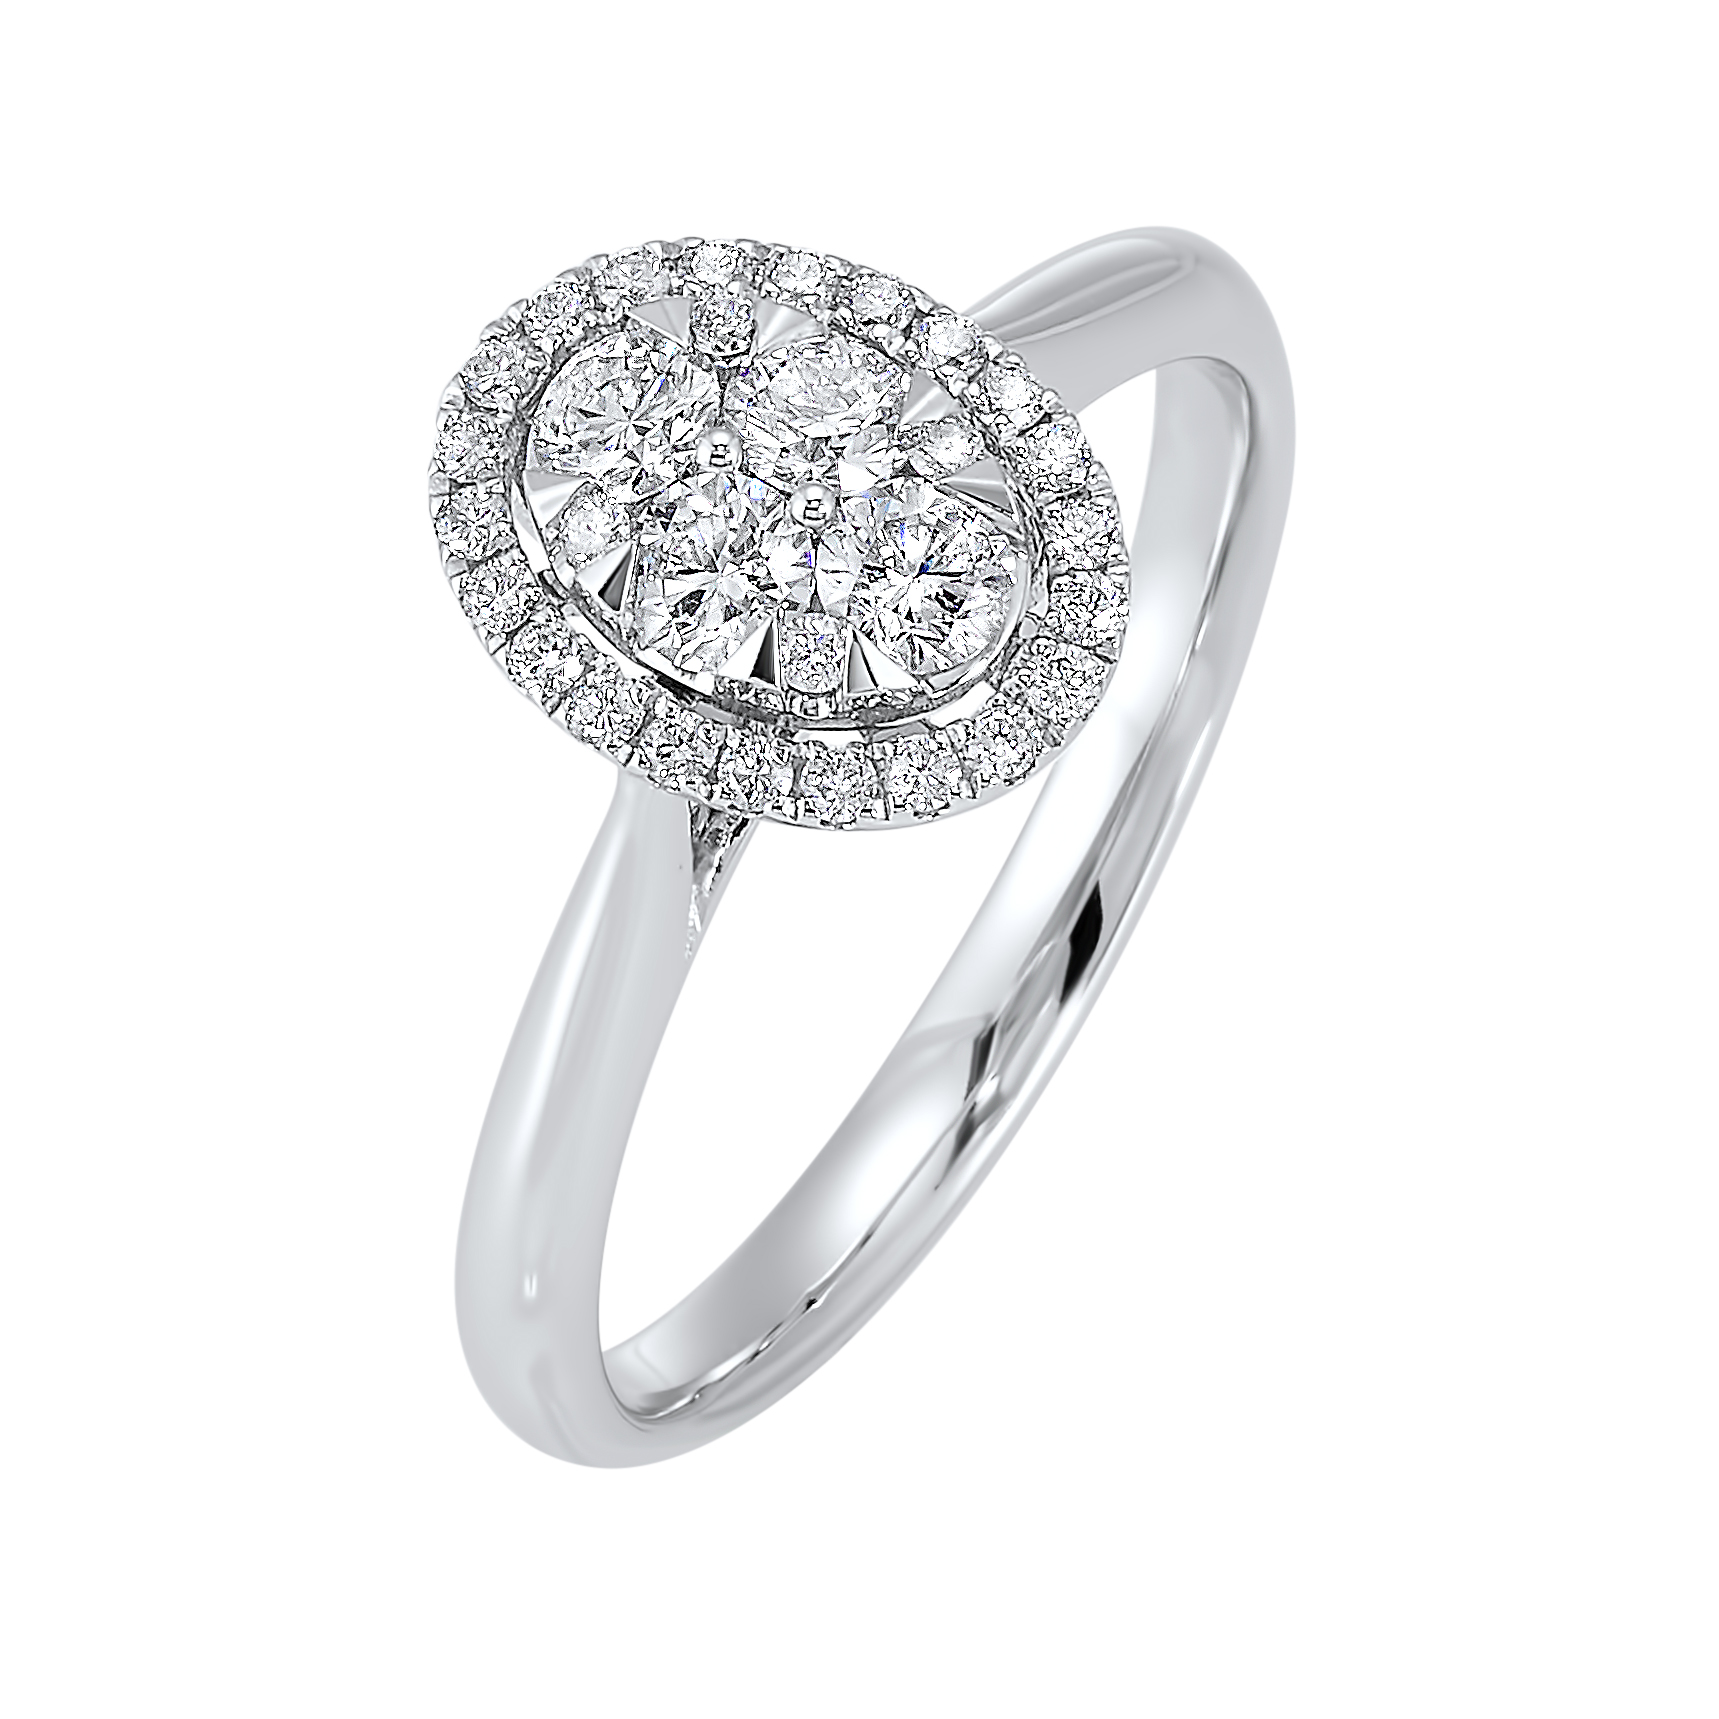 Oval Halo Diamond Engagement Ring in 14K White Gold (1/4 ct. tw.) by Gems One